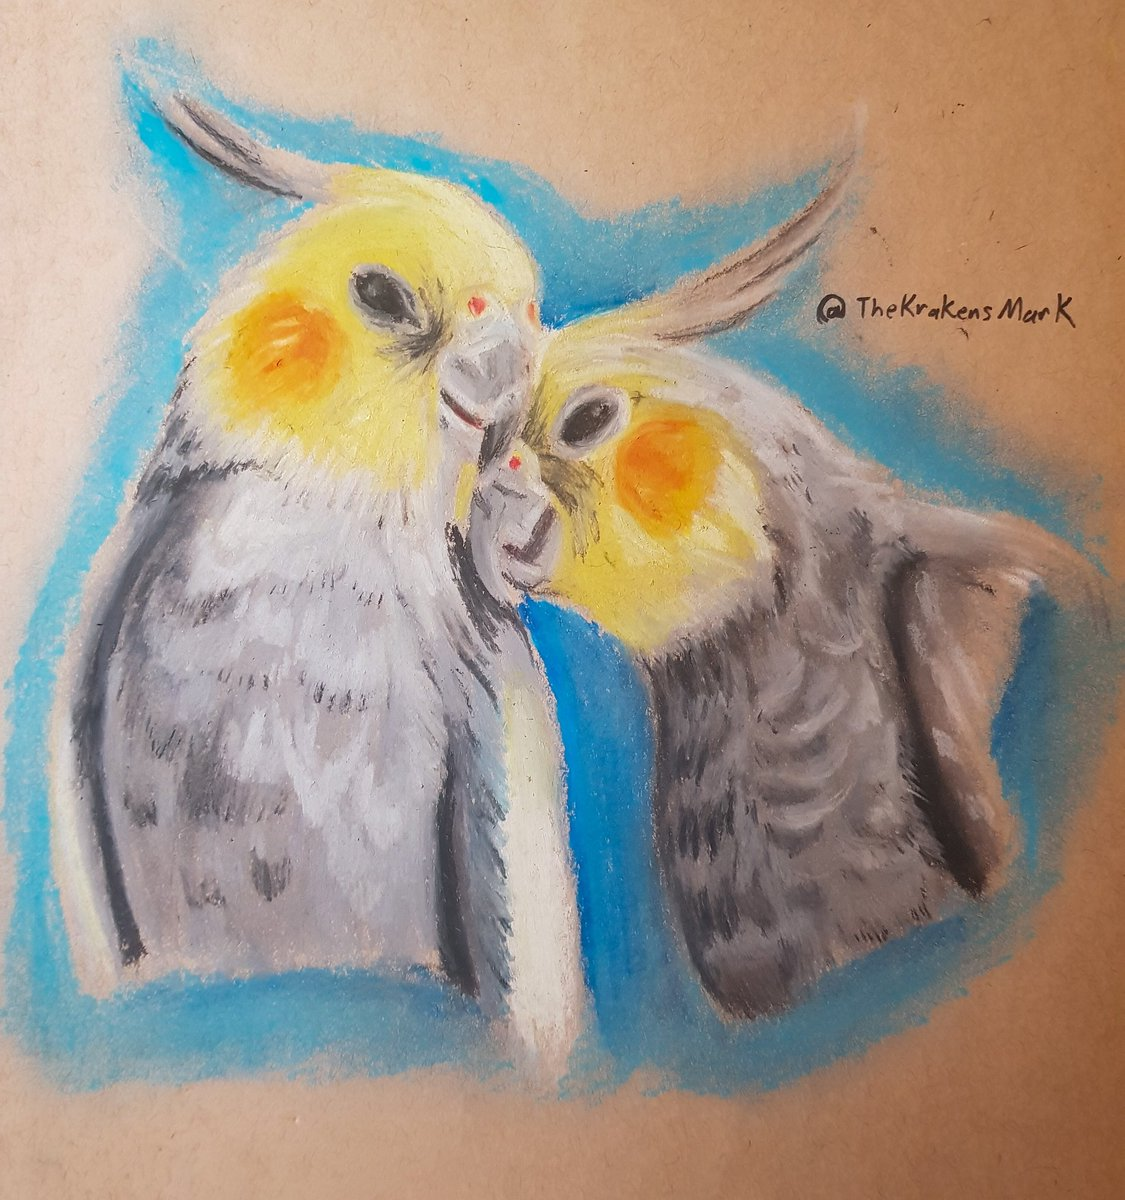 An #oilpastel drawing I did in a couple of hours featuring the Honk Squad of @AlexTheHonk Dominic on the left, Alex on the right. These lovely boys cheer me up alot.pic.twitter.com/AYY4IX4ijV